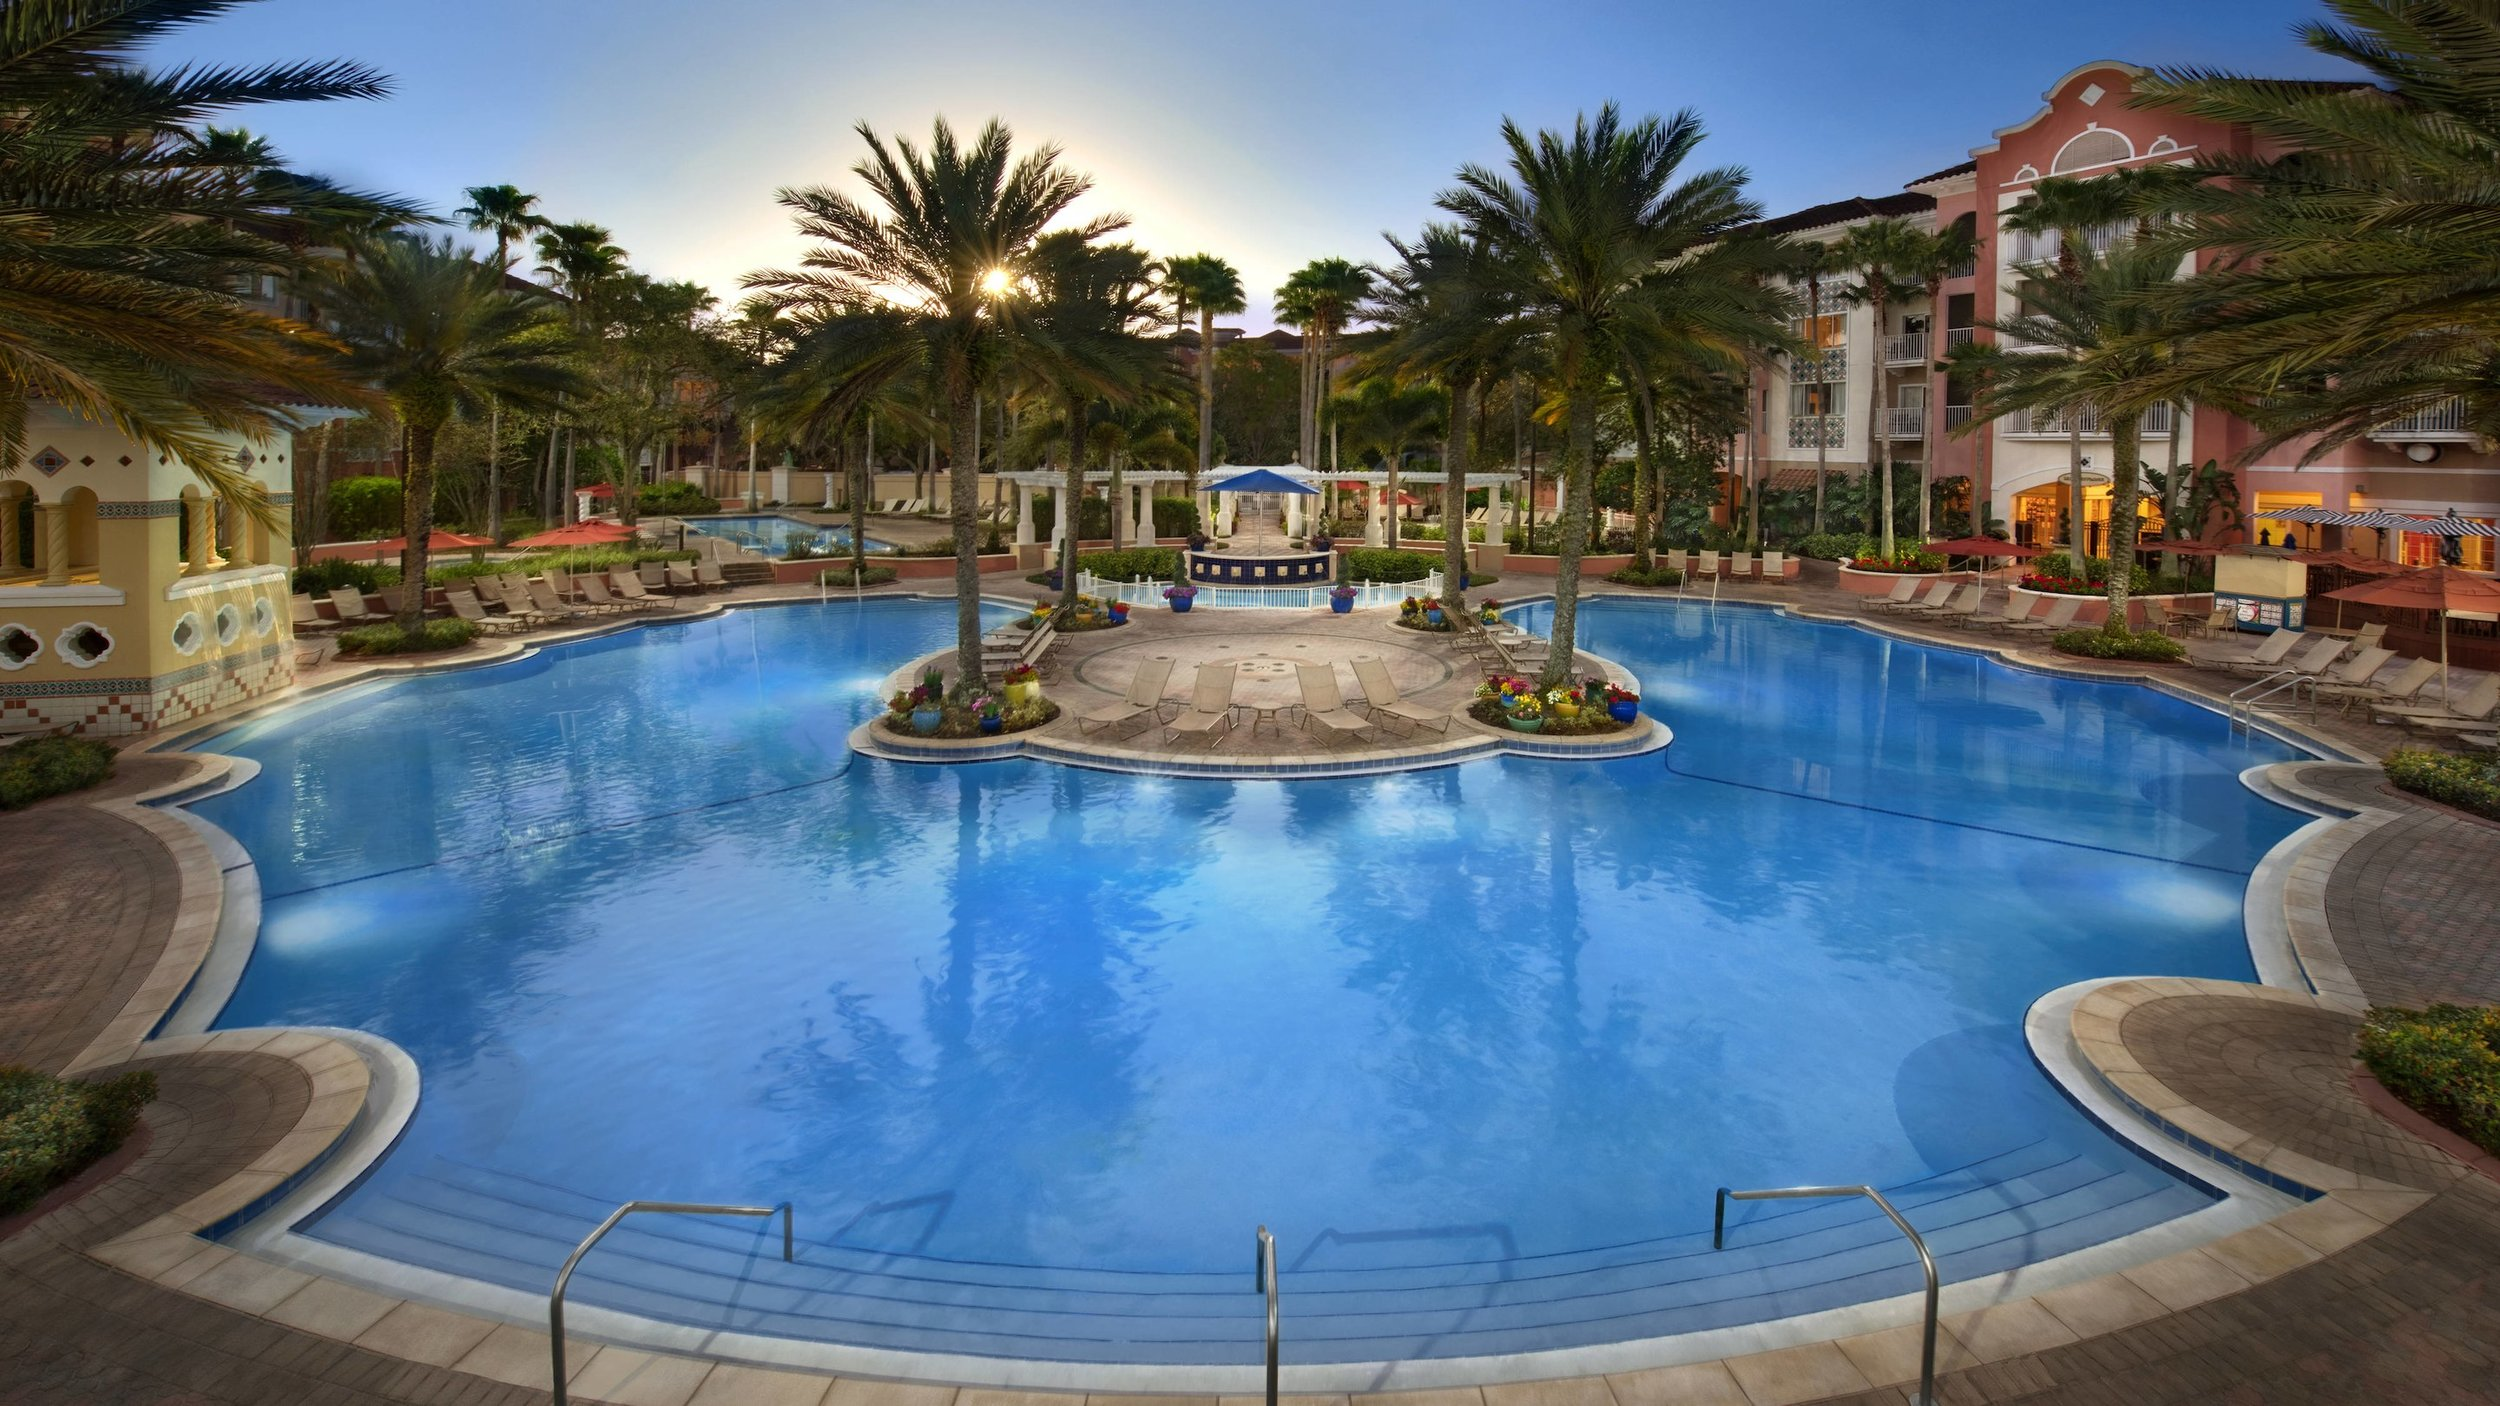 Marriott Grande Vista- Orlando, FL   Pool Painting and Refinishing